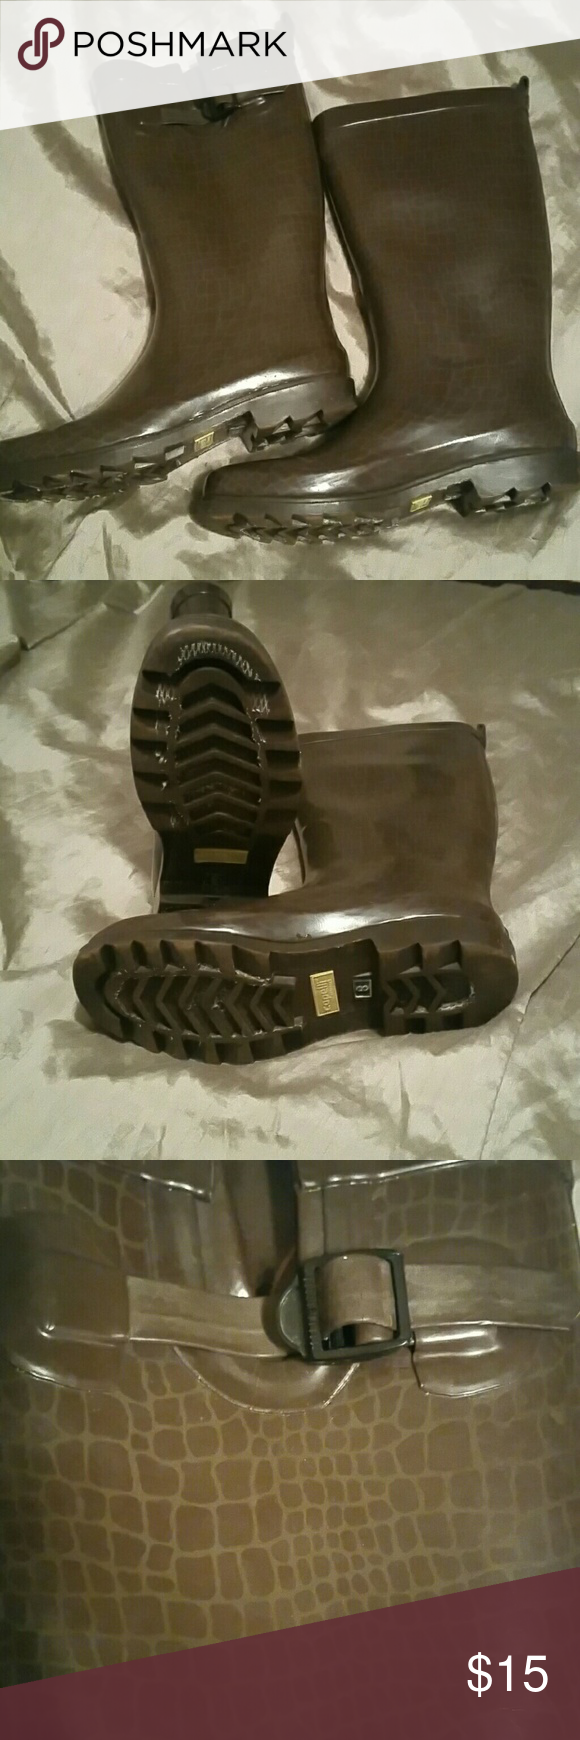 heavy duty Capelli rain boots Grayish/Green heavy duty rubber sole...looks dirty but actually had a netting on the bottom that wears off & leaves a white texture. Excellent lightly loved condition.  size 8 Capelli New York Shoes Winter & Rain Boots